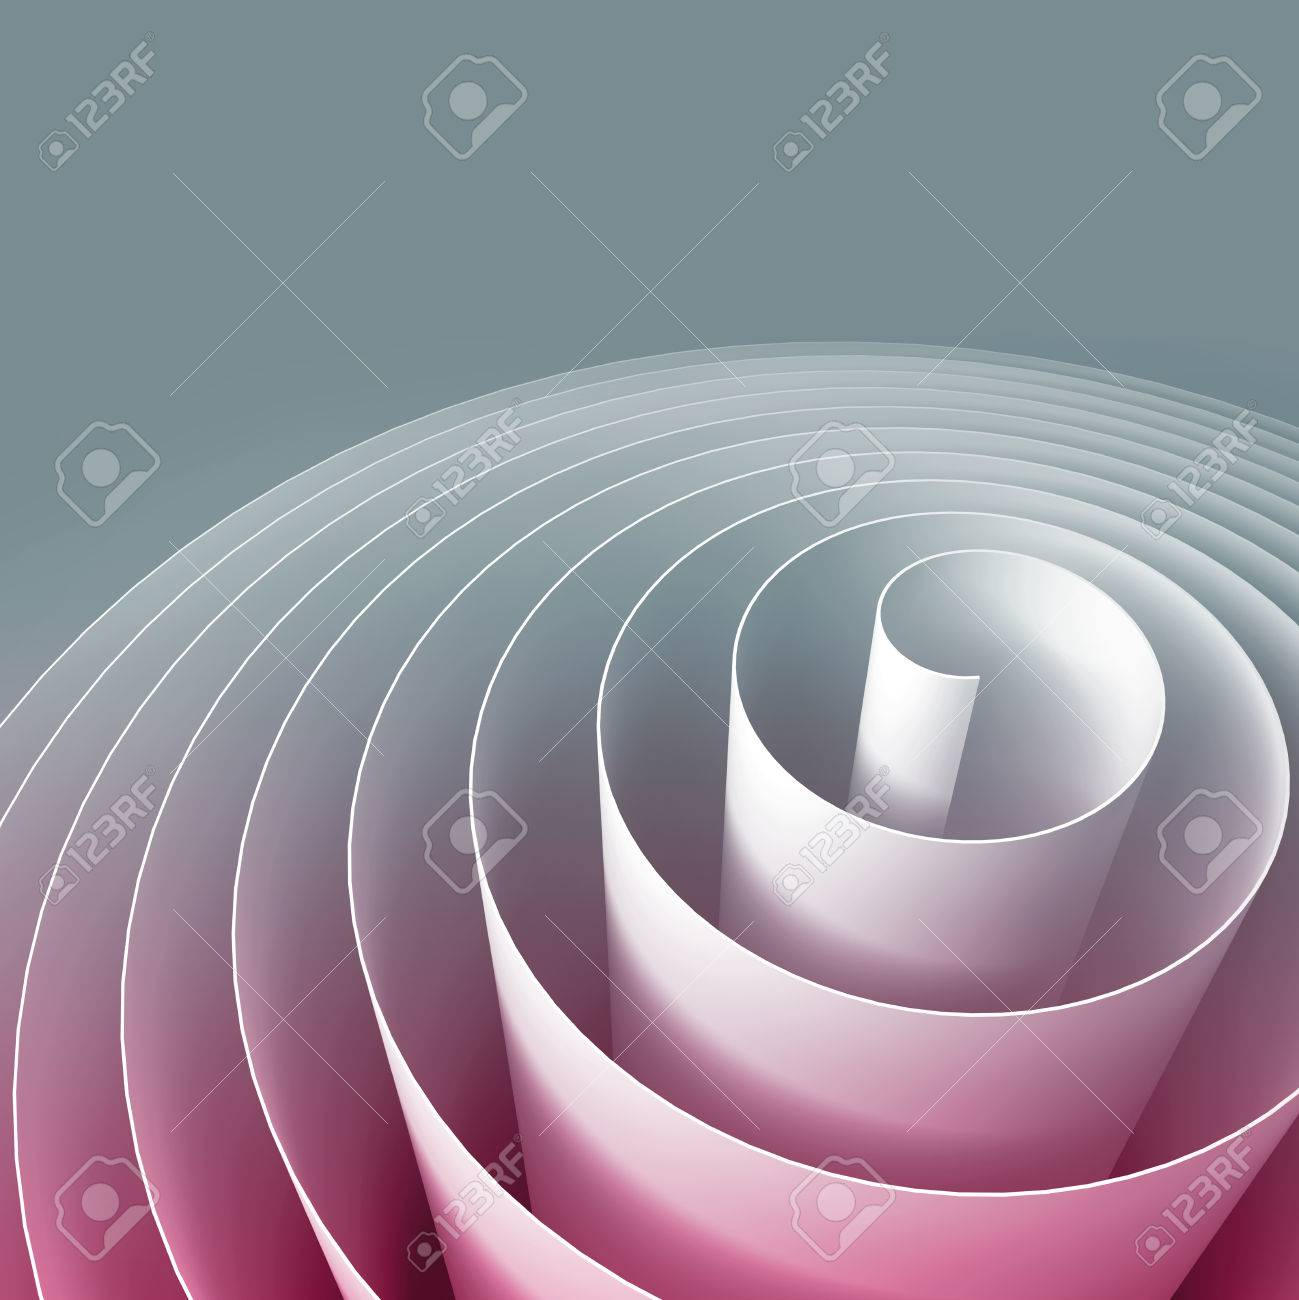 Colorful 3d Spiral Abstract Digital Illustration Background